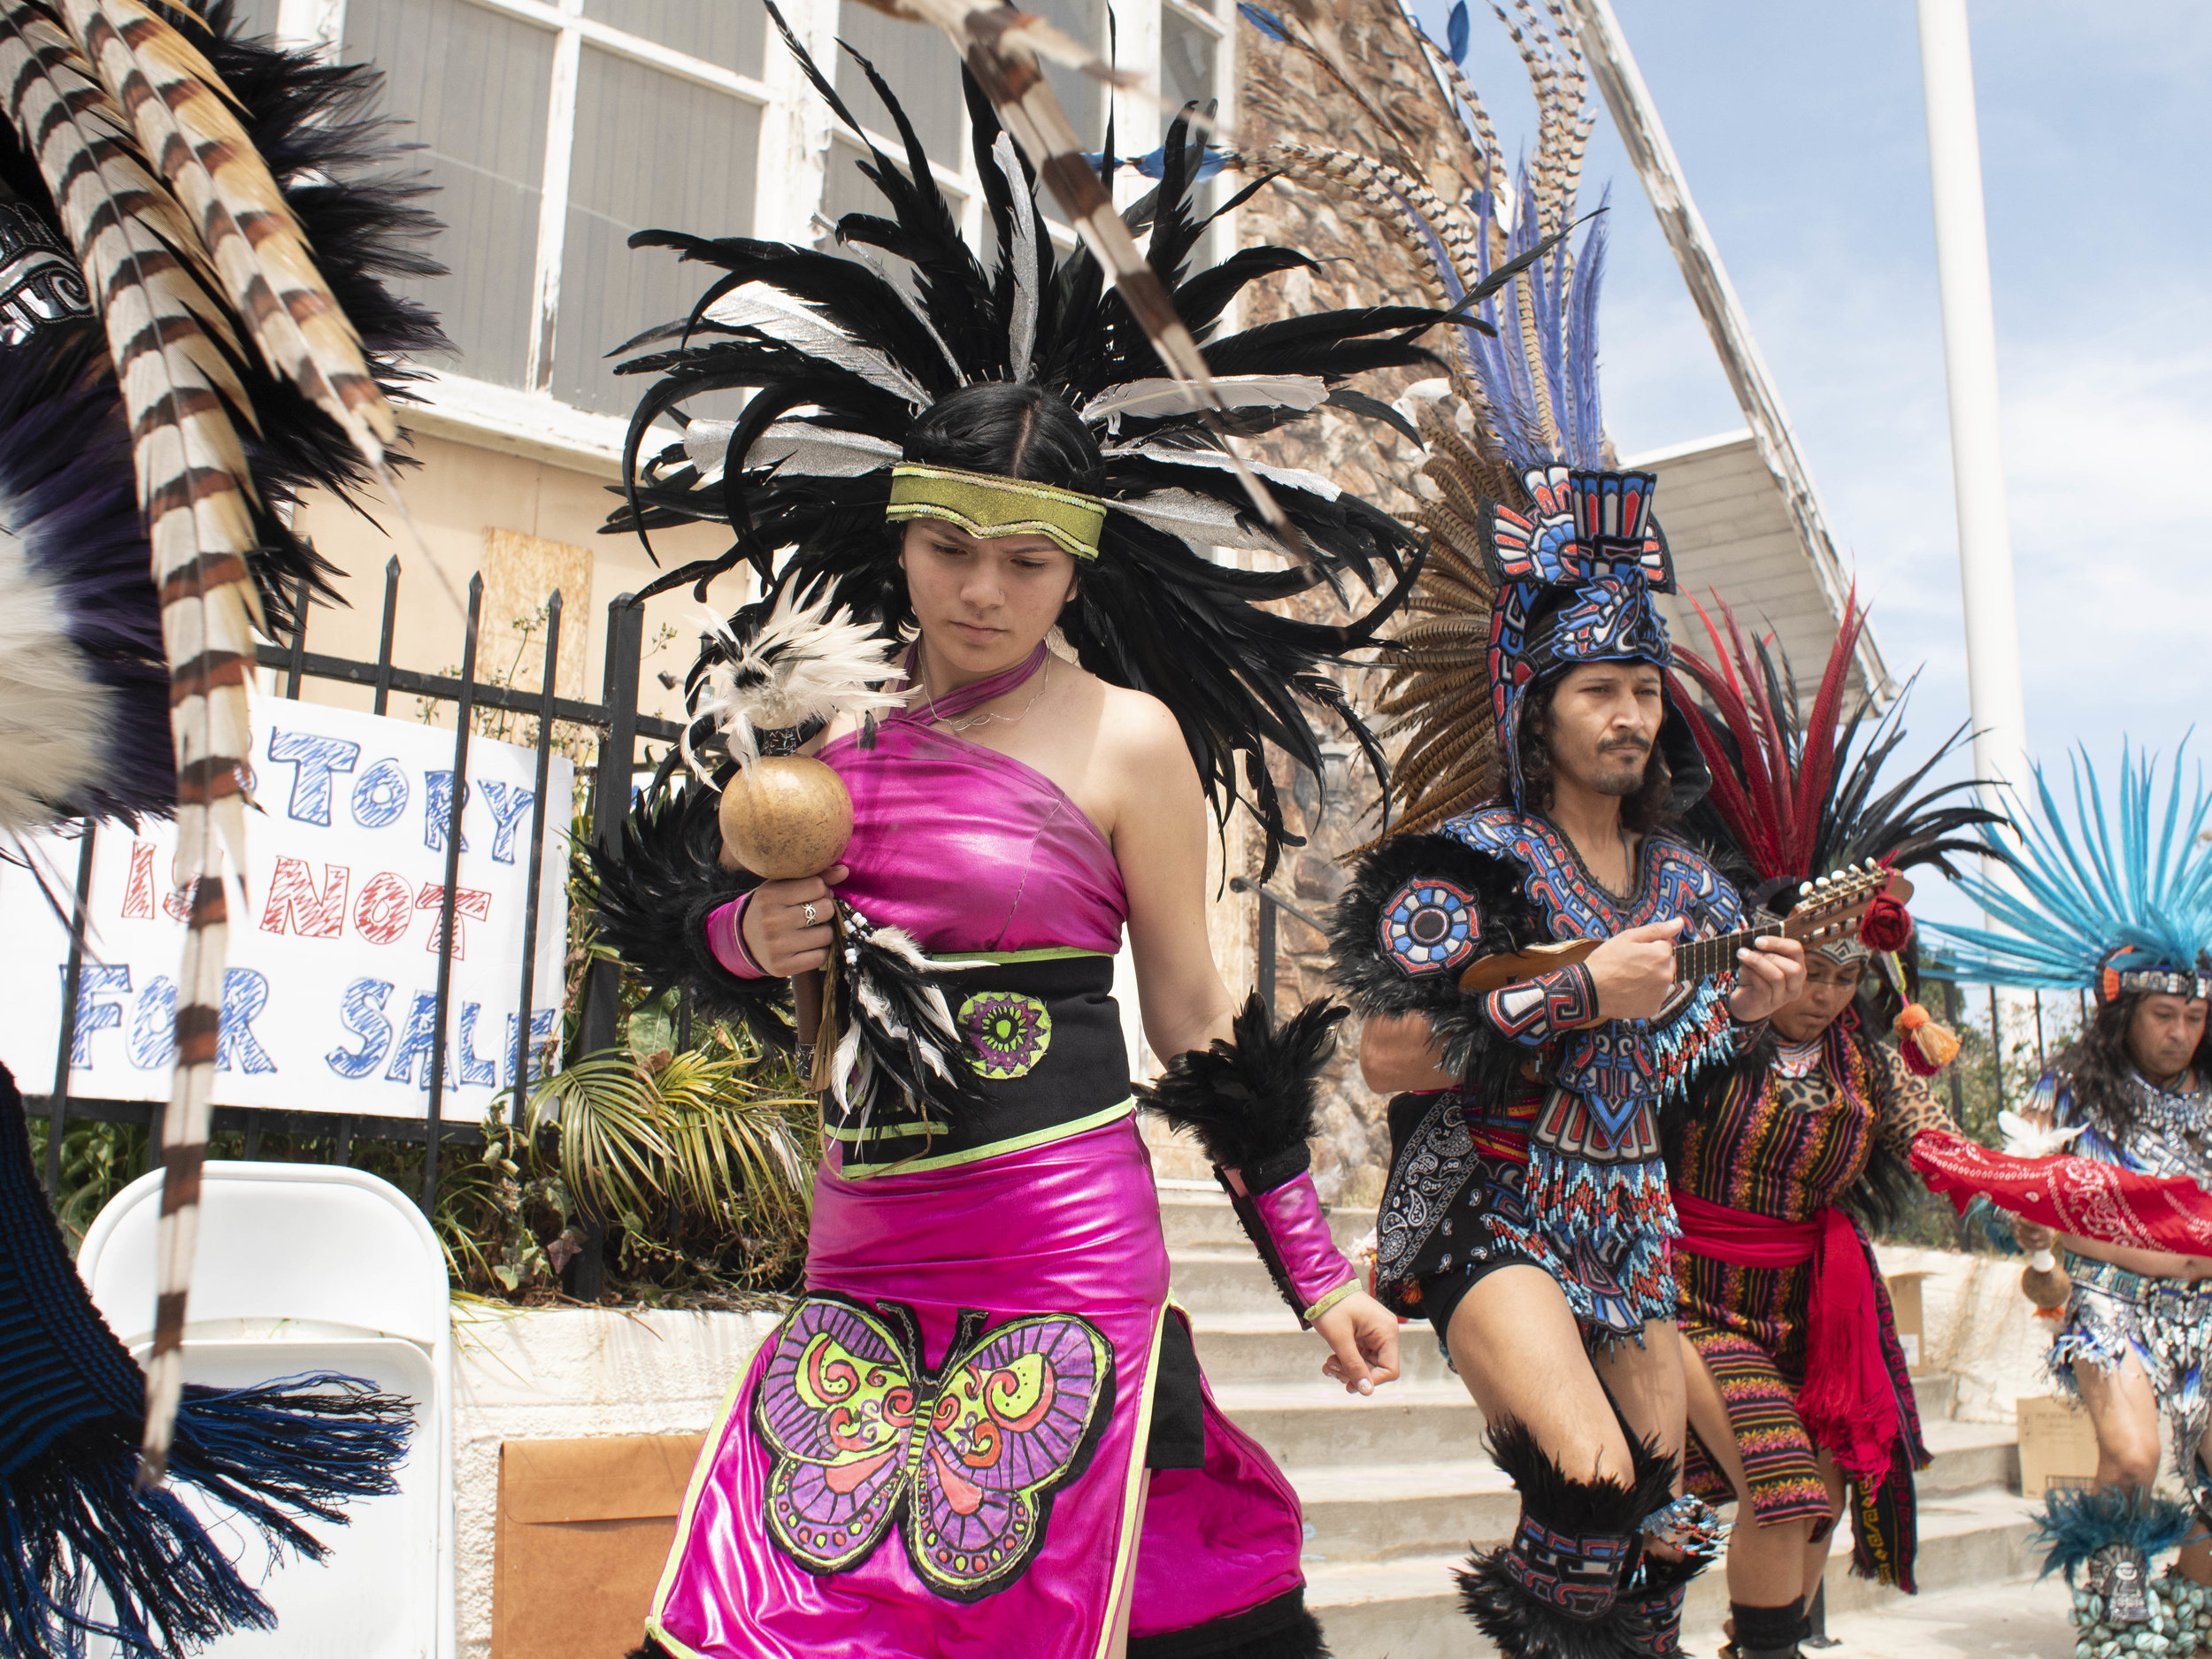 Members of the Aztec Dance Group, Xipe-Totec, prepare to perform ceremonial dance at the First Baptist Church of Venice during a community rally for the church. Jay Penske owner of Variety and Rolling Stone Magazines purchased the church with plans that include a roof top deck, in an attempt to convert it into a single residence mega-mansion for he and his wife Elaine Irwin, former Victoria Secret model, and former wife of John Cougar Mellencamp. Sunday, April 14, 2019, Los Angeles, California (Victor Noerdlinger/Corsair